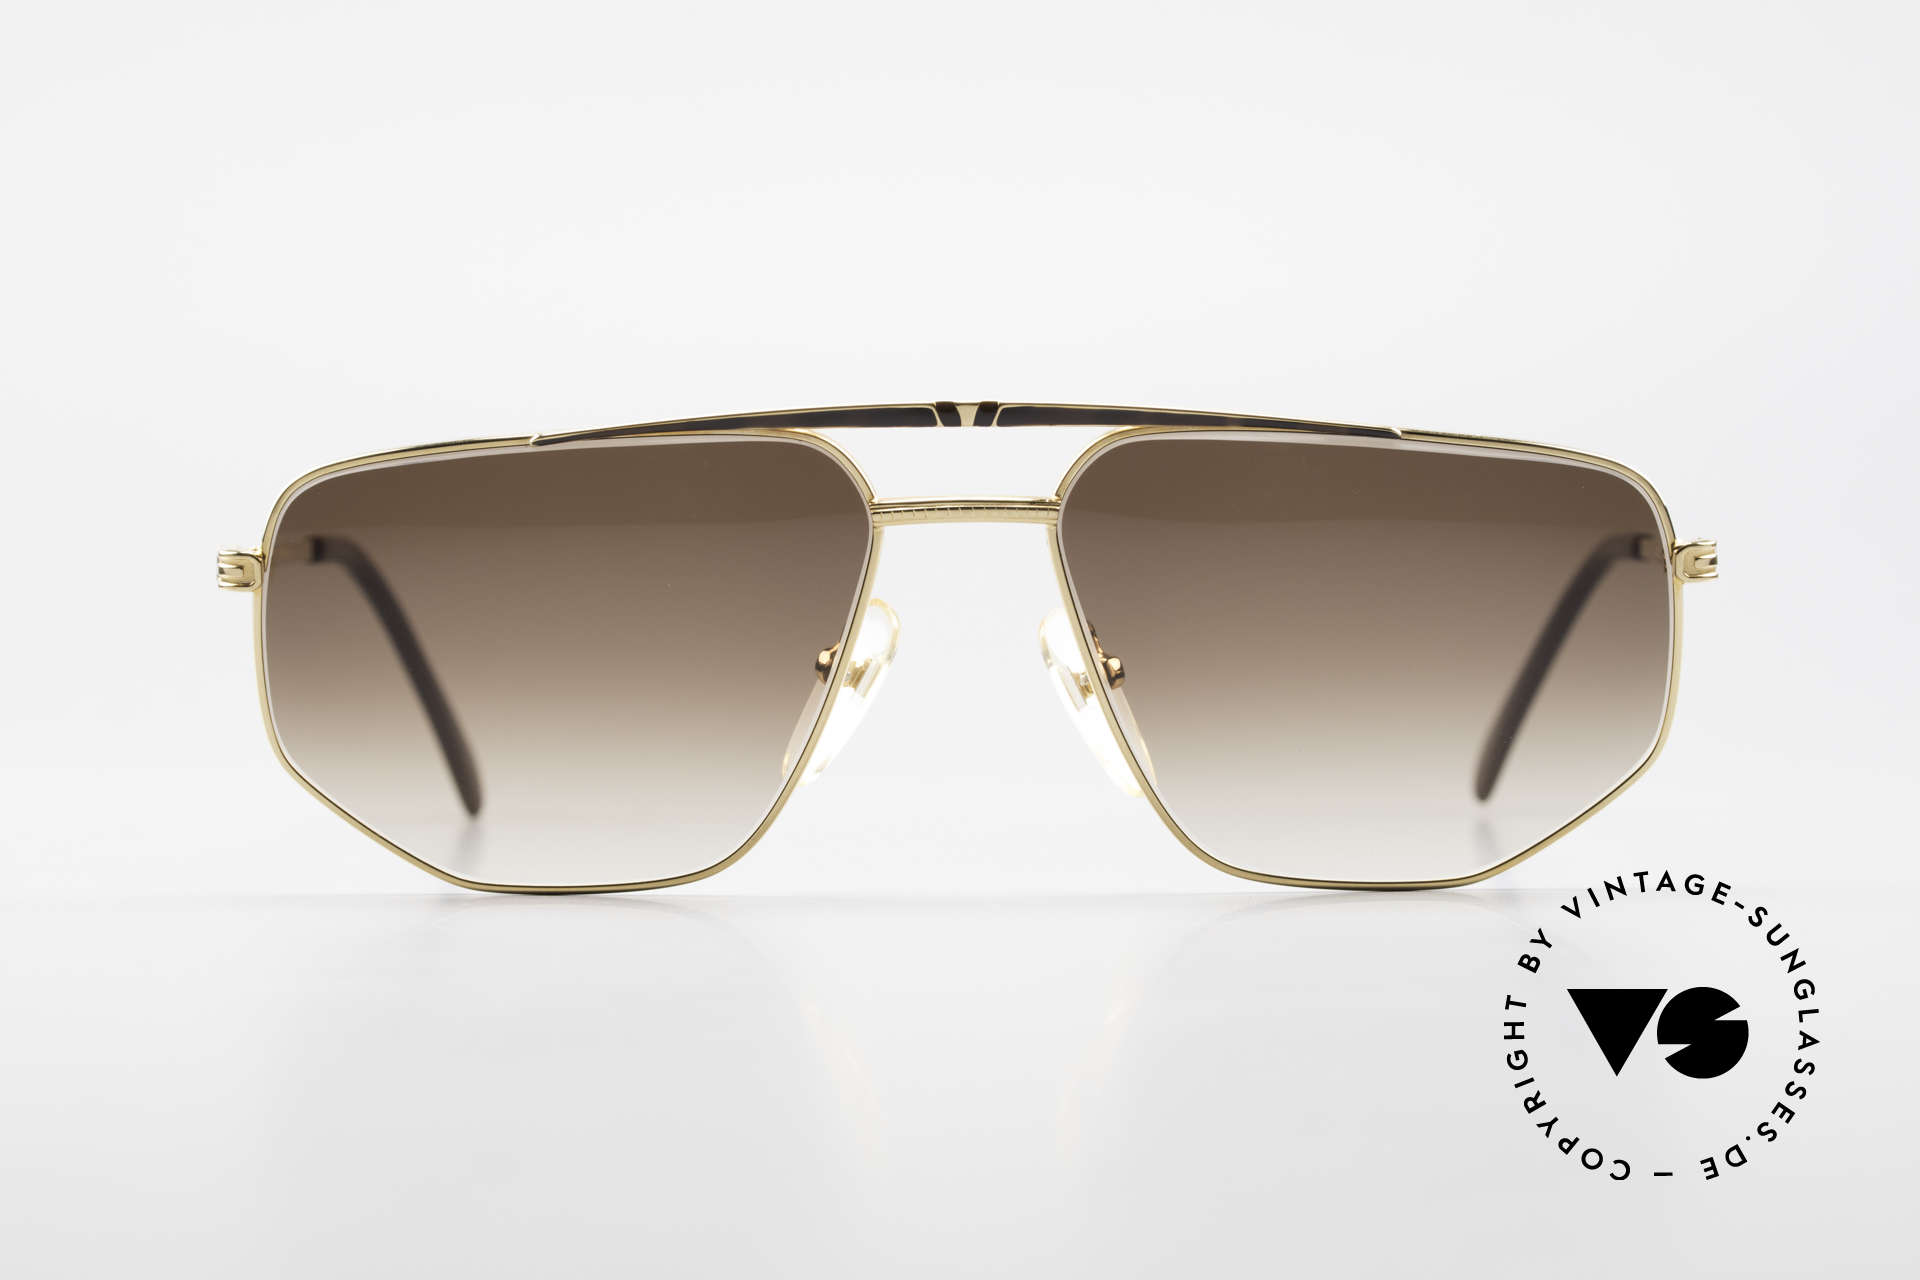 Roman Rothschild R1037 Gold Plated Luxury Shades, all frames by Rothschild are 18Kt or 20Kt gold-plated, Made for Men